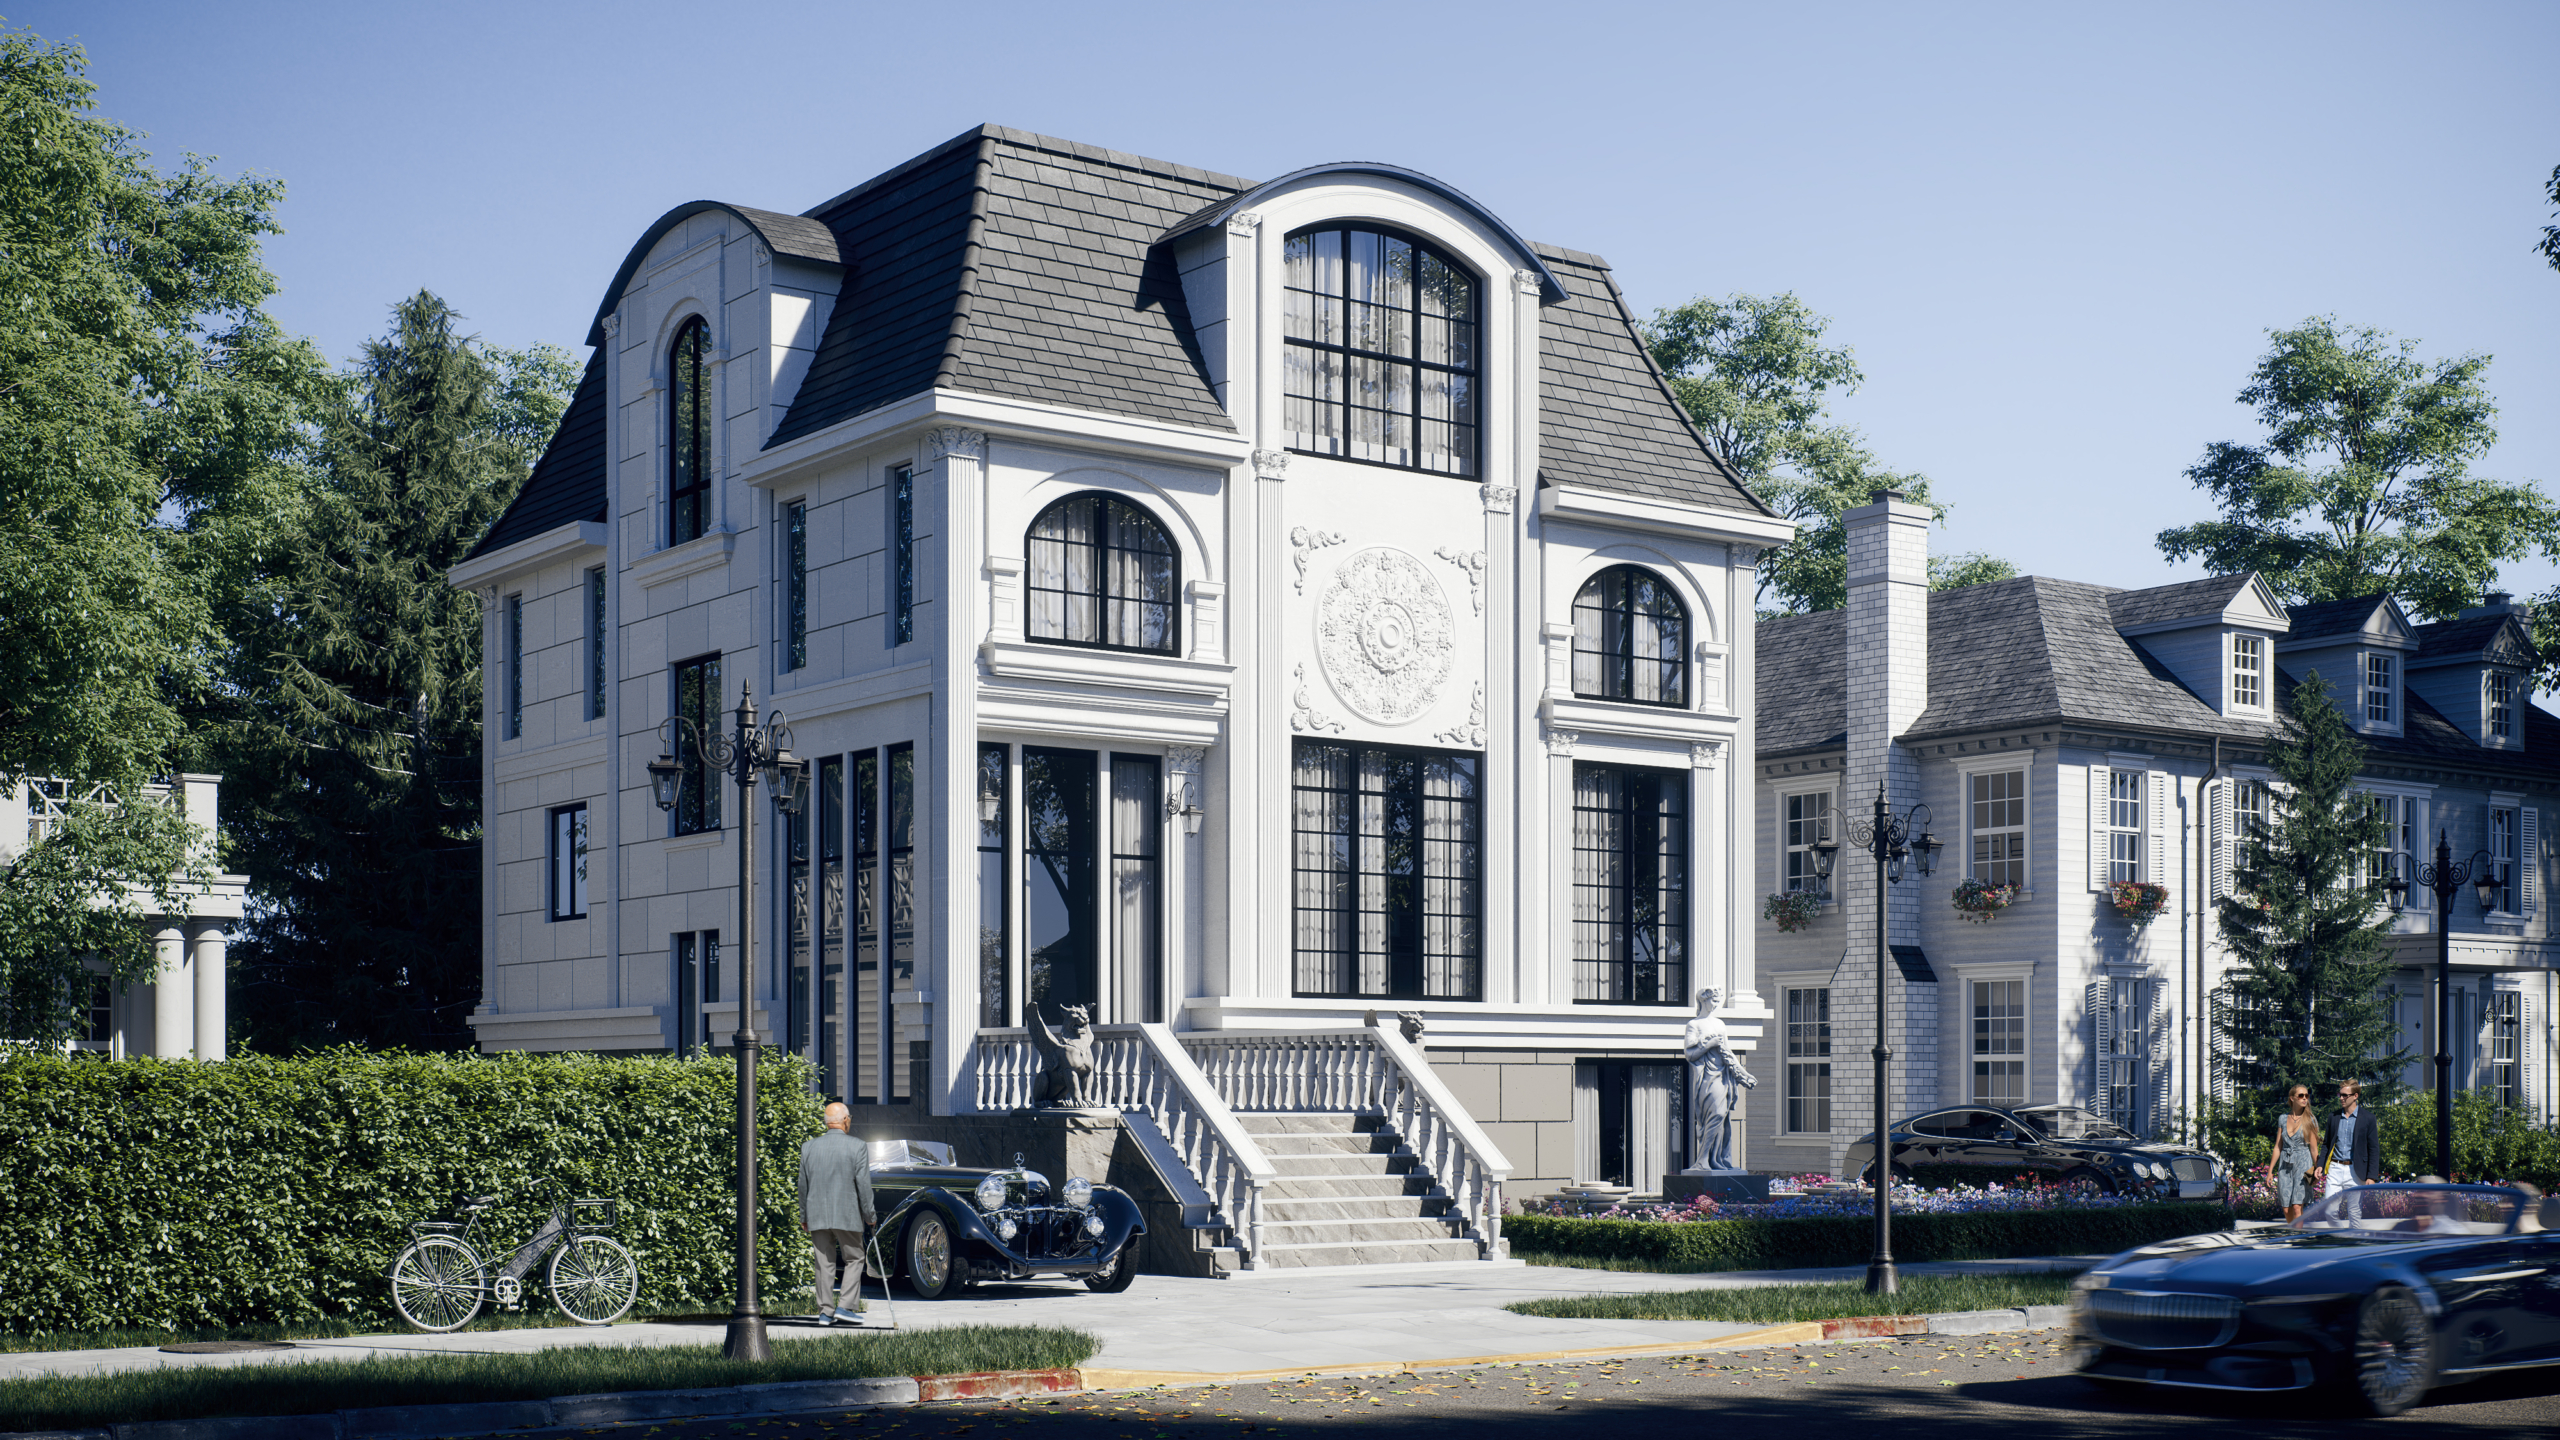 3d-rendering-house-jersey-city-usa-image